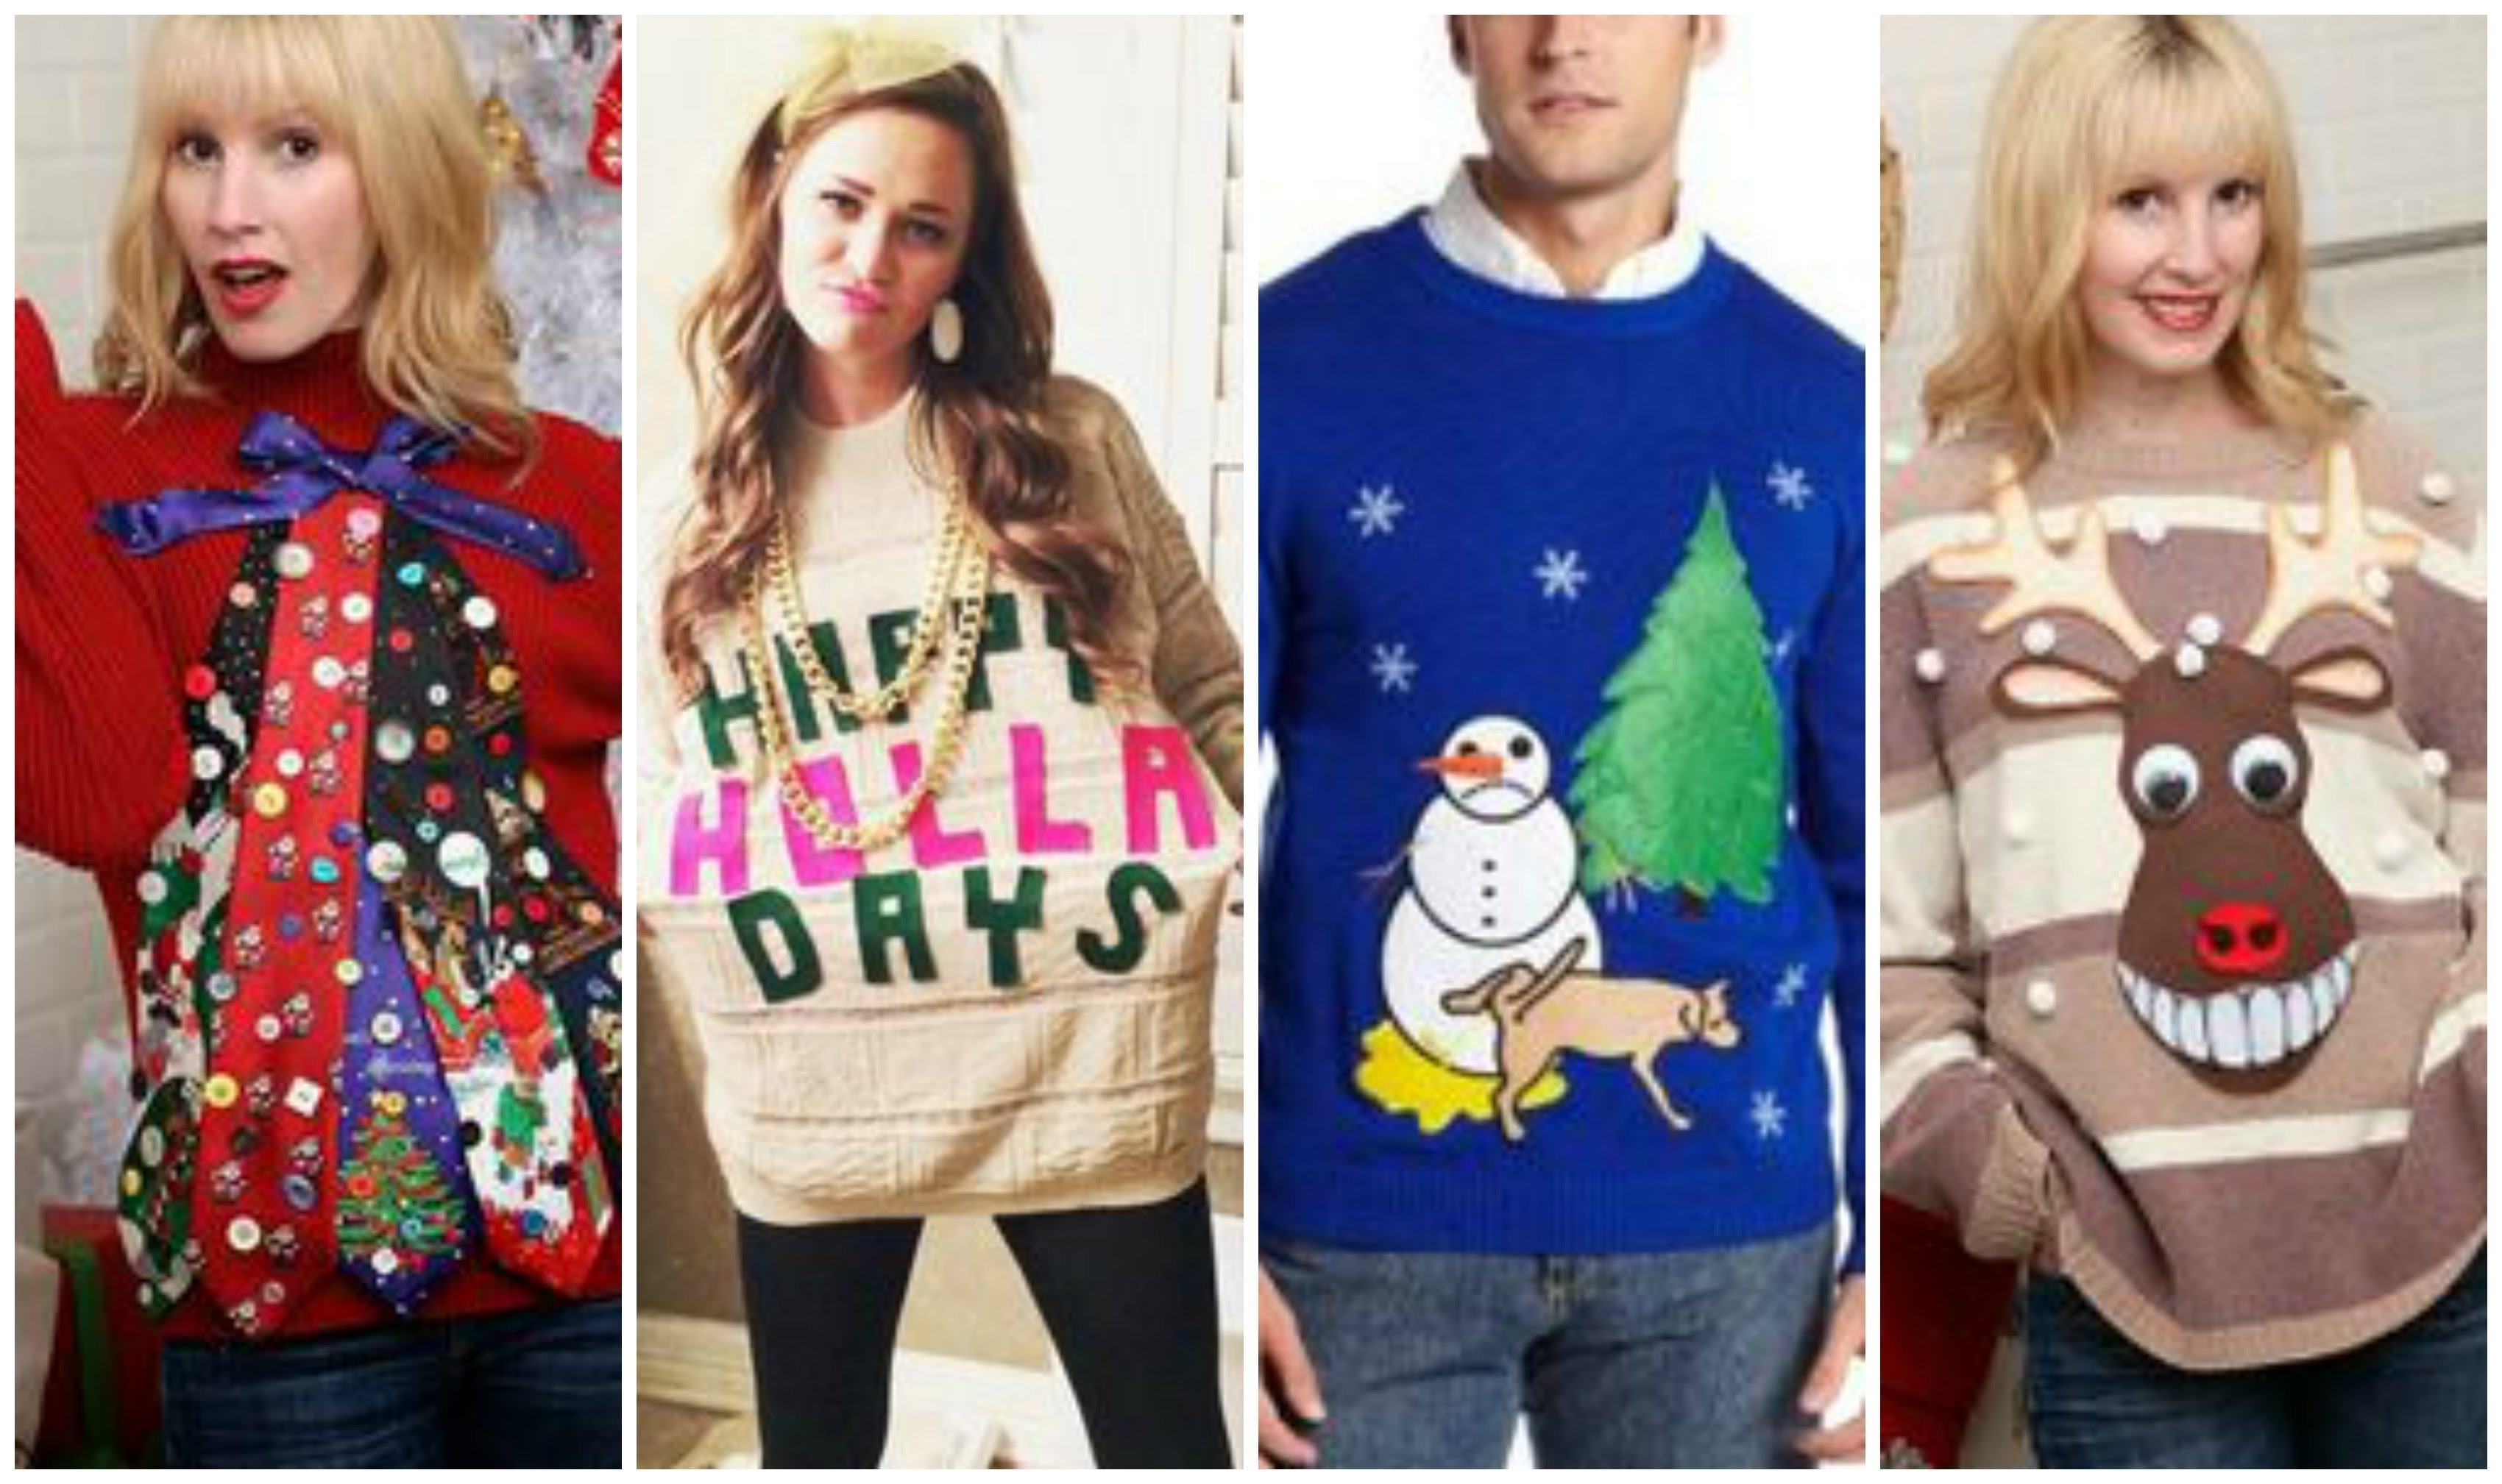 10 Stunning Ugly Christmas Sweater Ideas Homemade ugly christmas sweater ideas lookbook youtube 2 2020